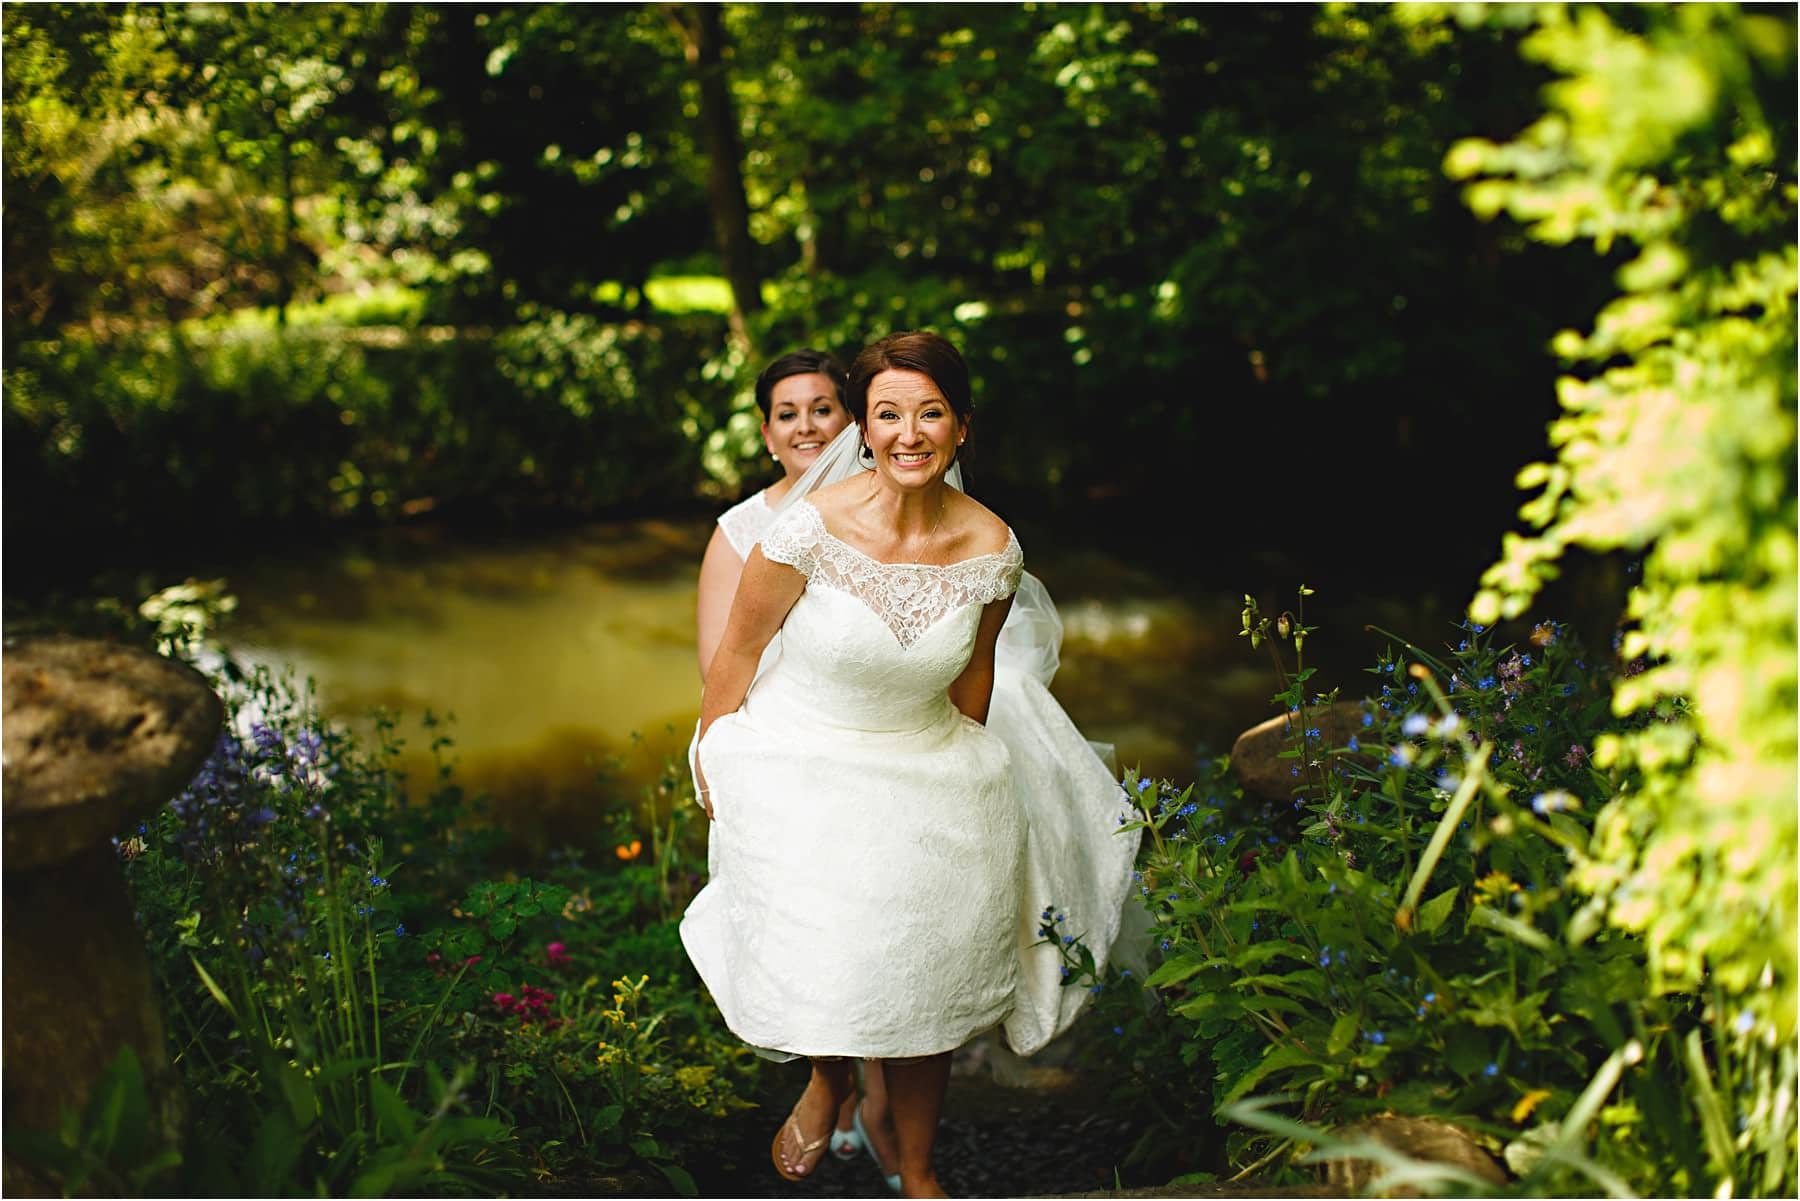 Shustoke_Farm_Barns_Wedding_Photos_Emma_Tom_0010